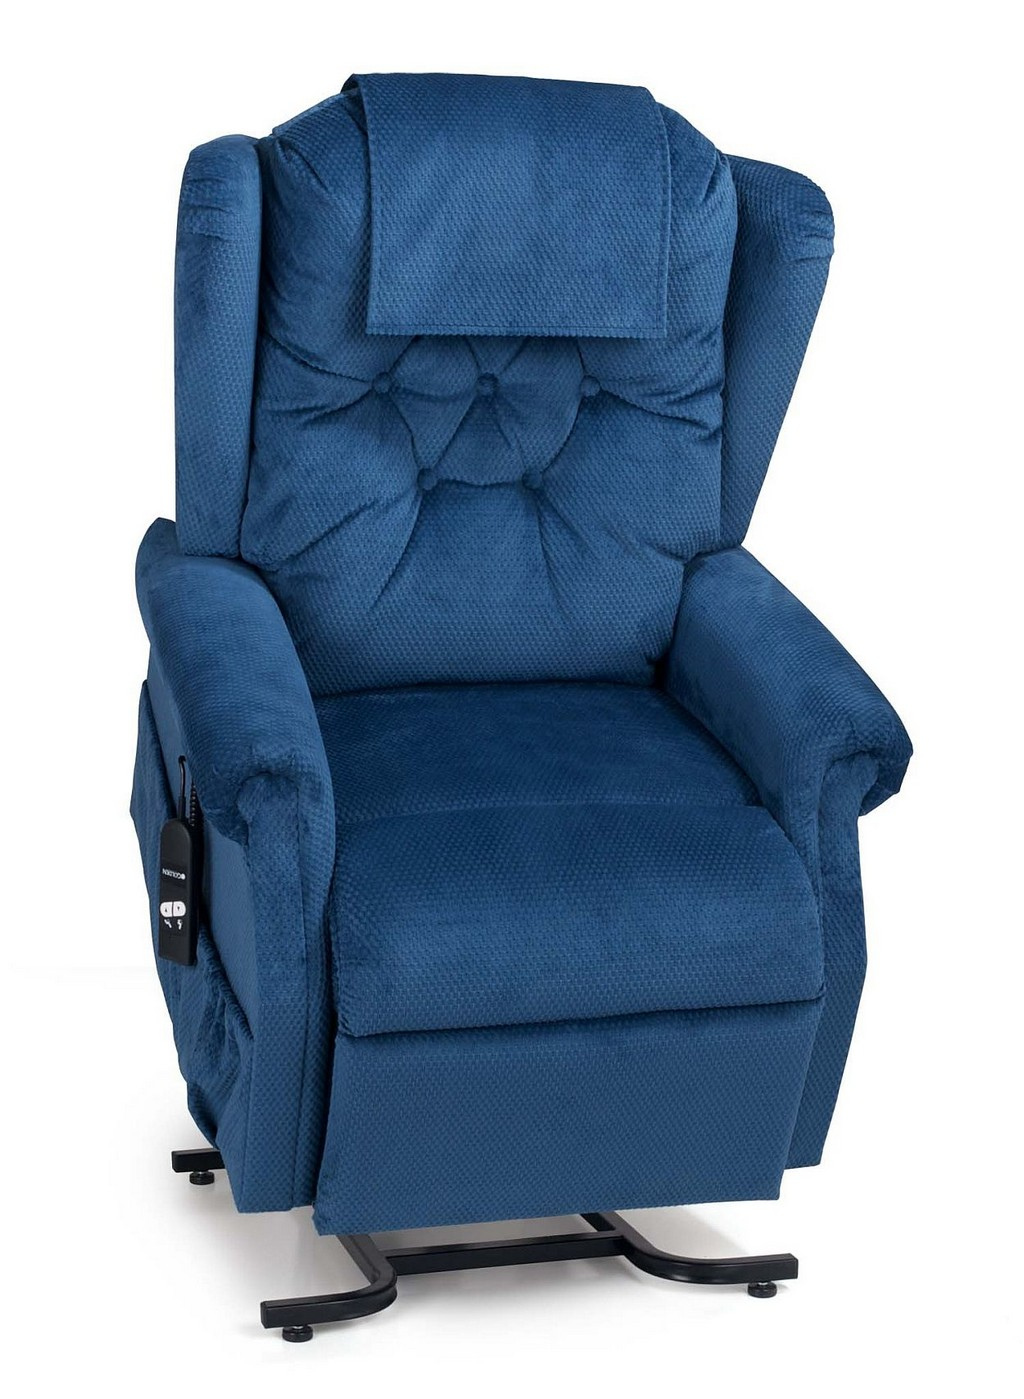 lift up chairs, blue cross pay for lift chairs, pride lift chairs recliners, lift chairs insurance